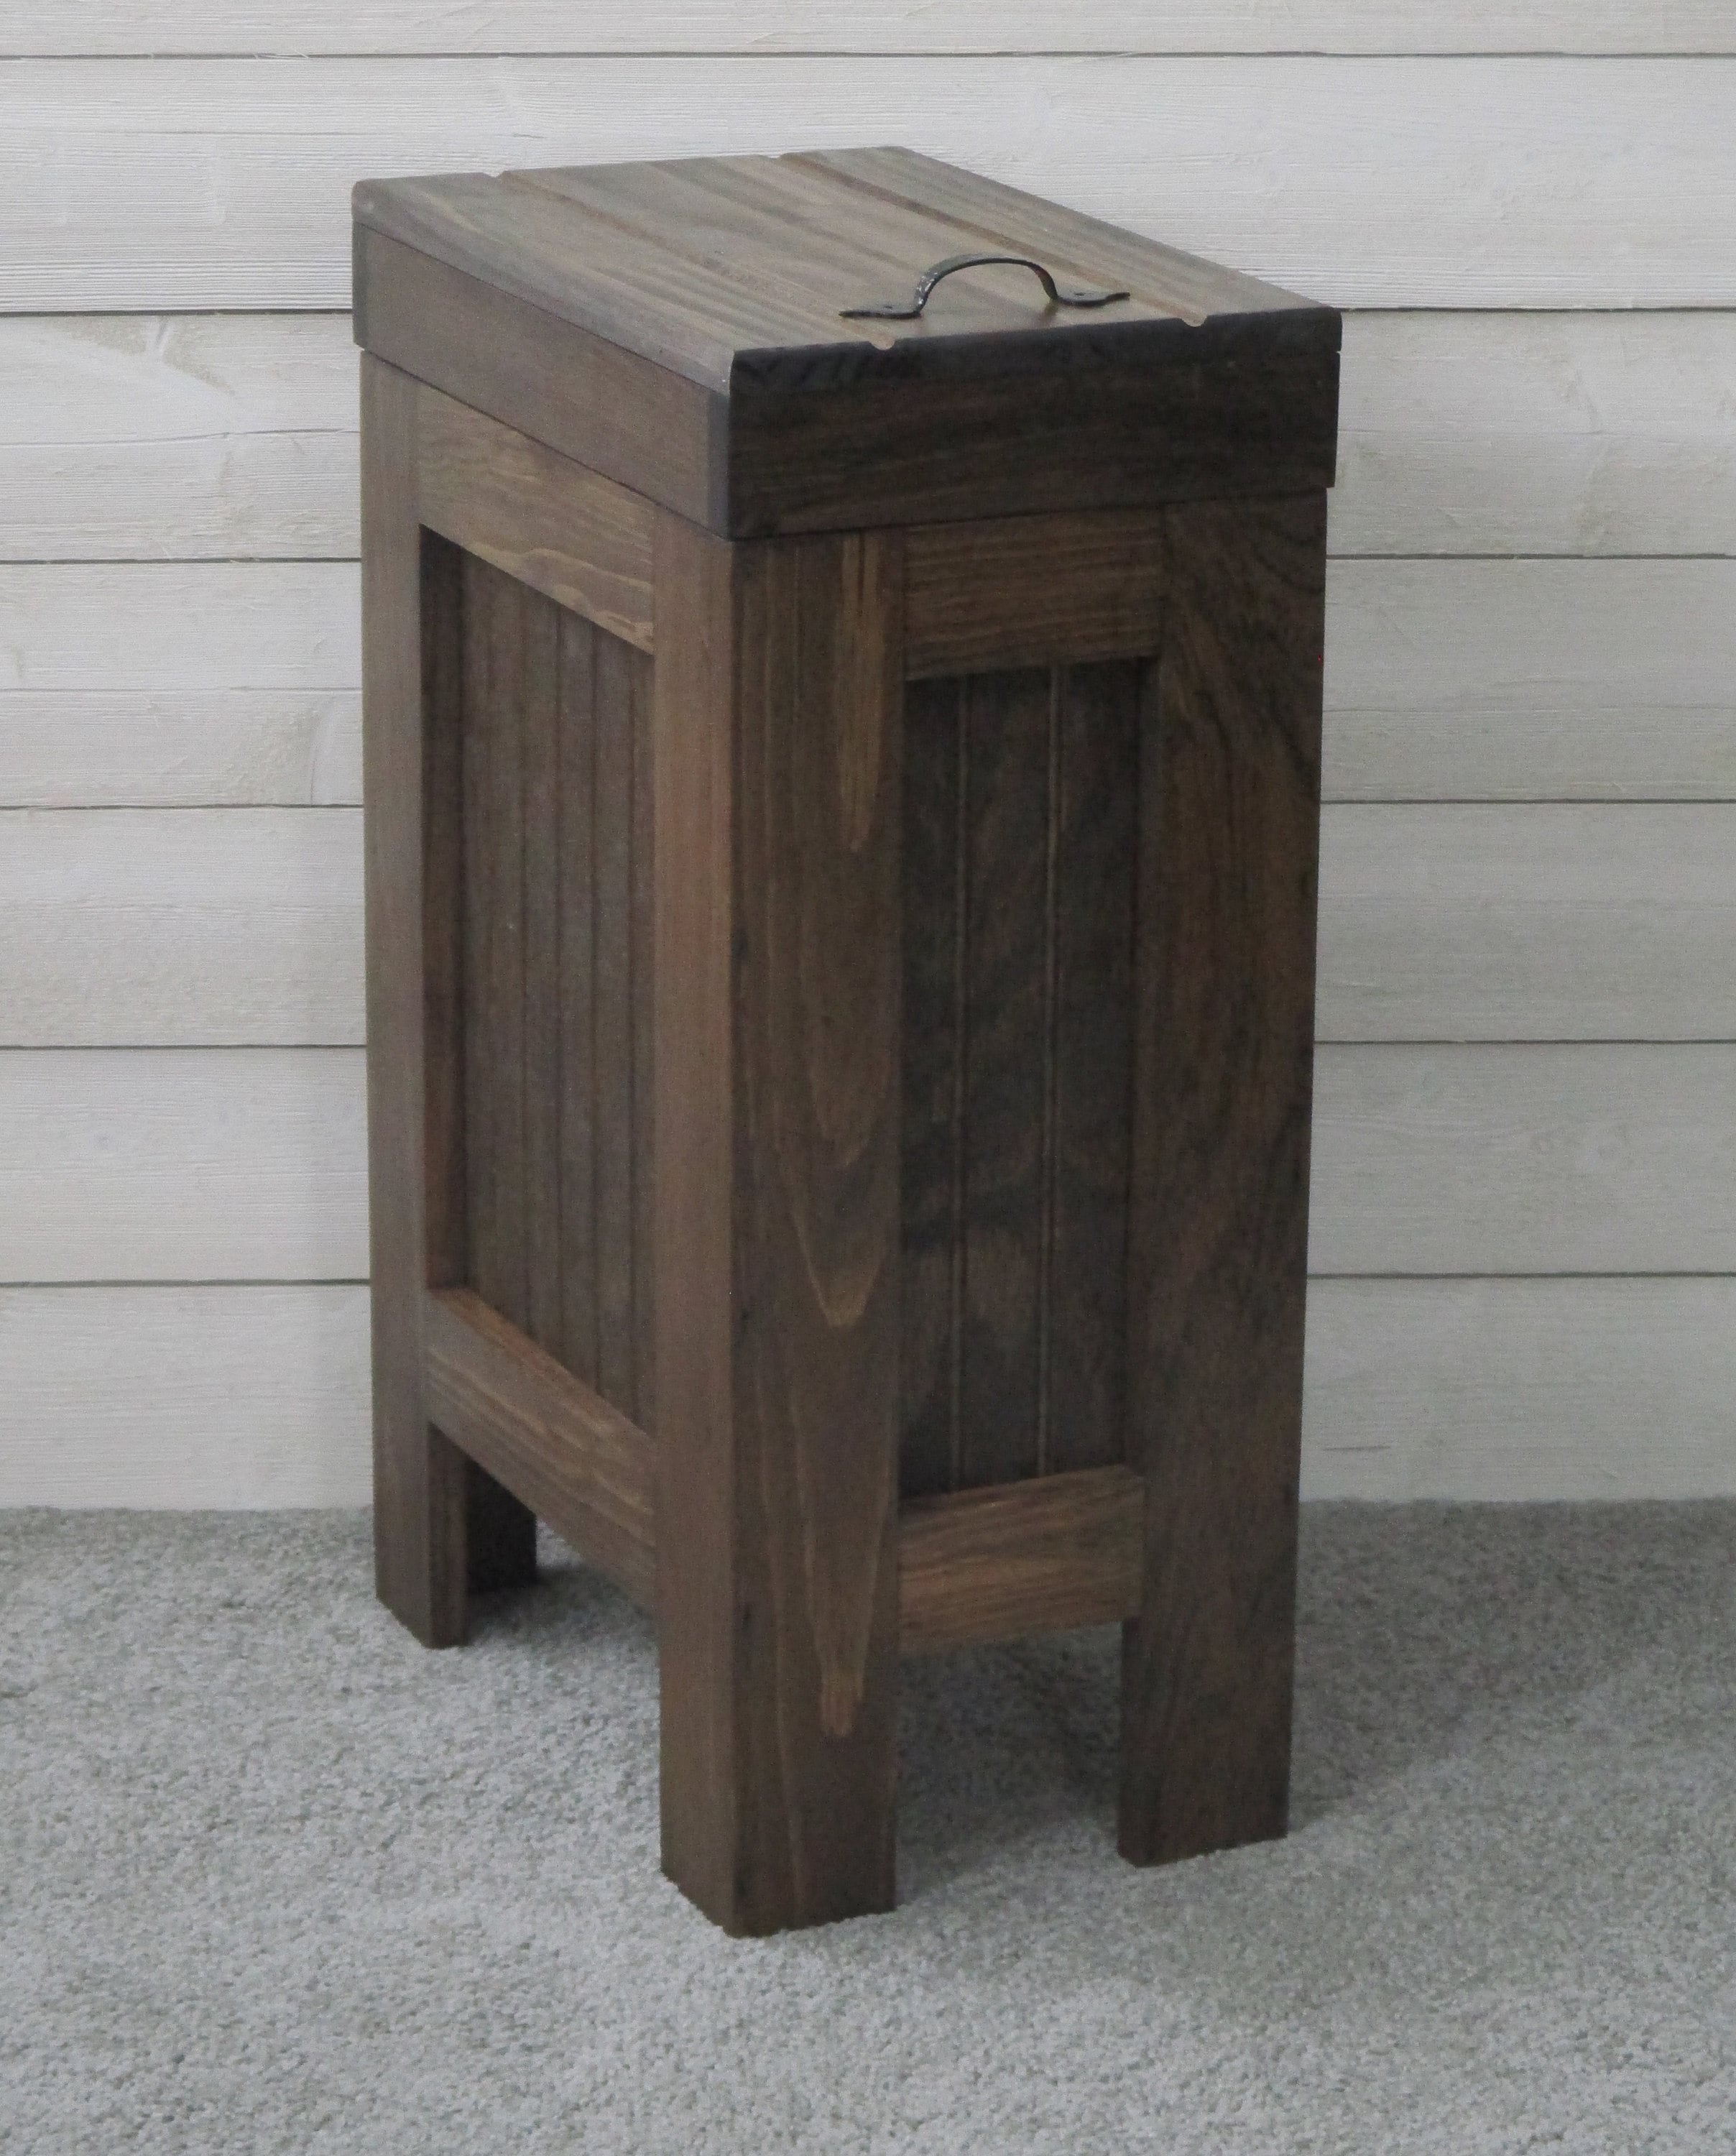 Kitchen Trash Can / Wood Garbage Can / Trash Can Cabinet ...